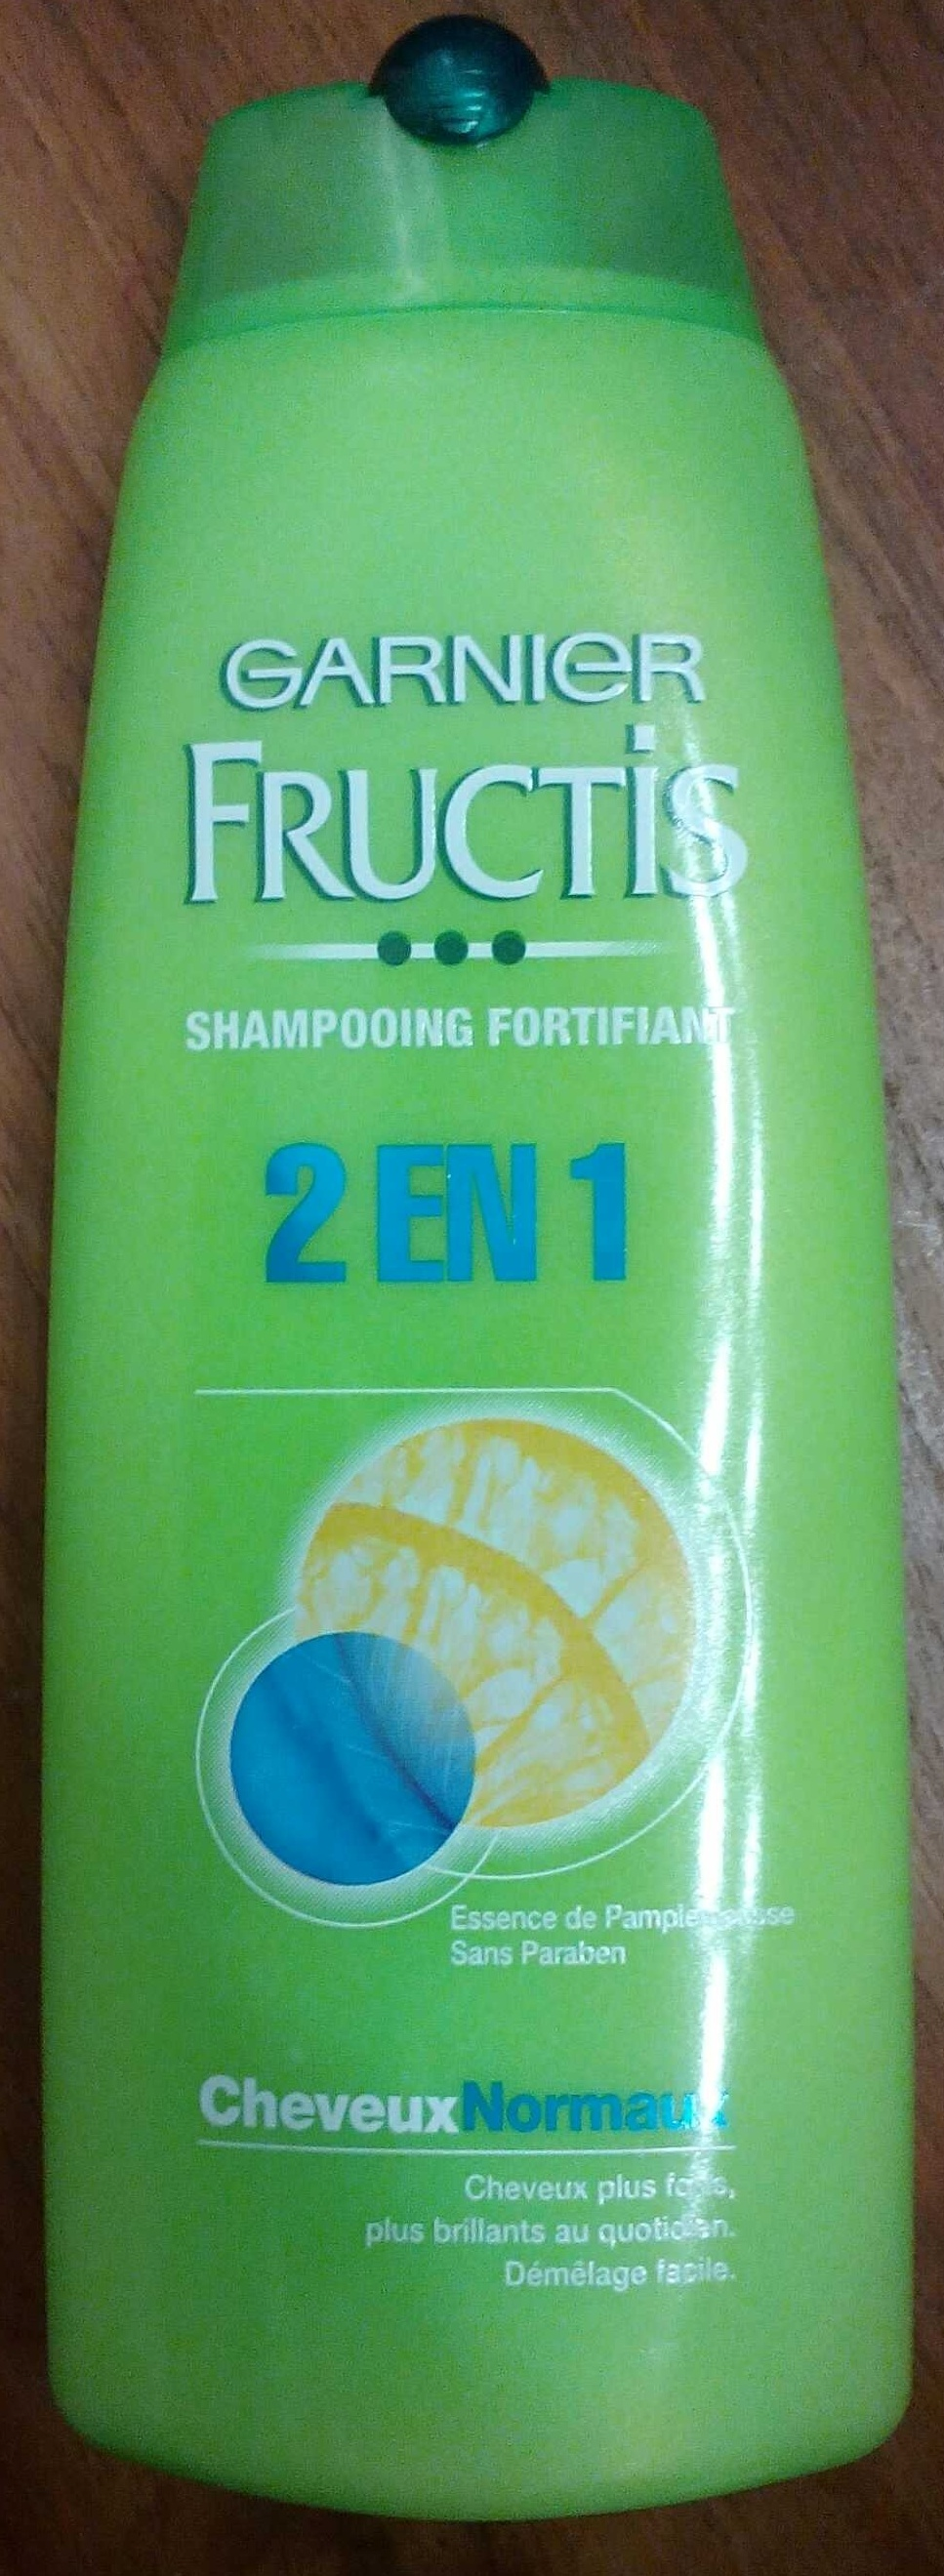 Shampooing fortifiant 2 en 1 - Product - fr